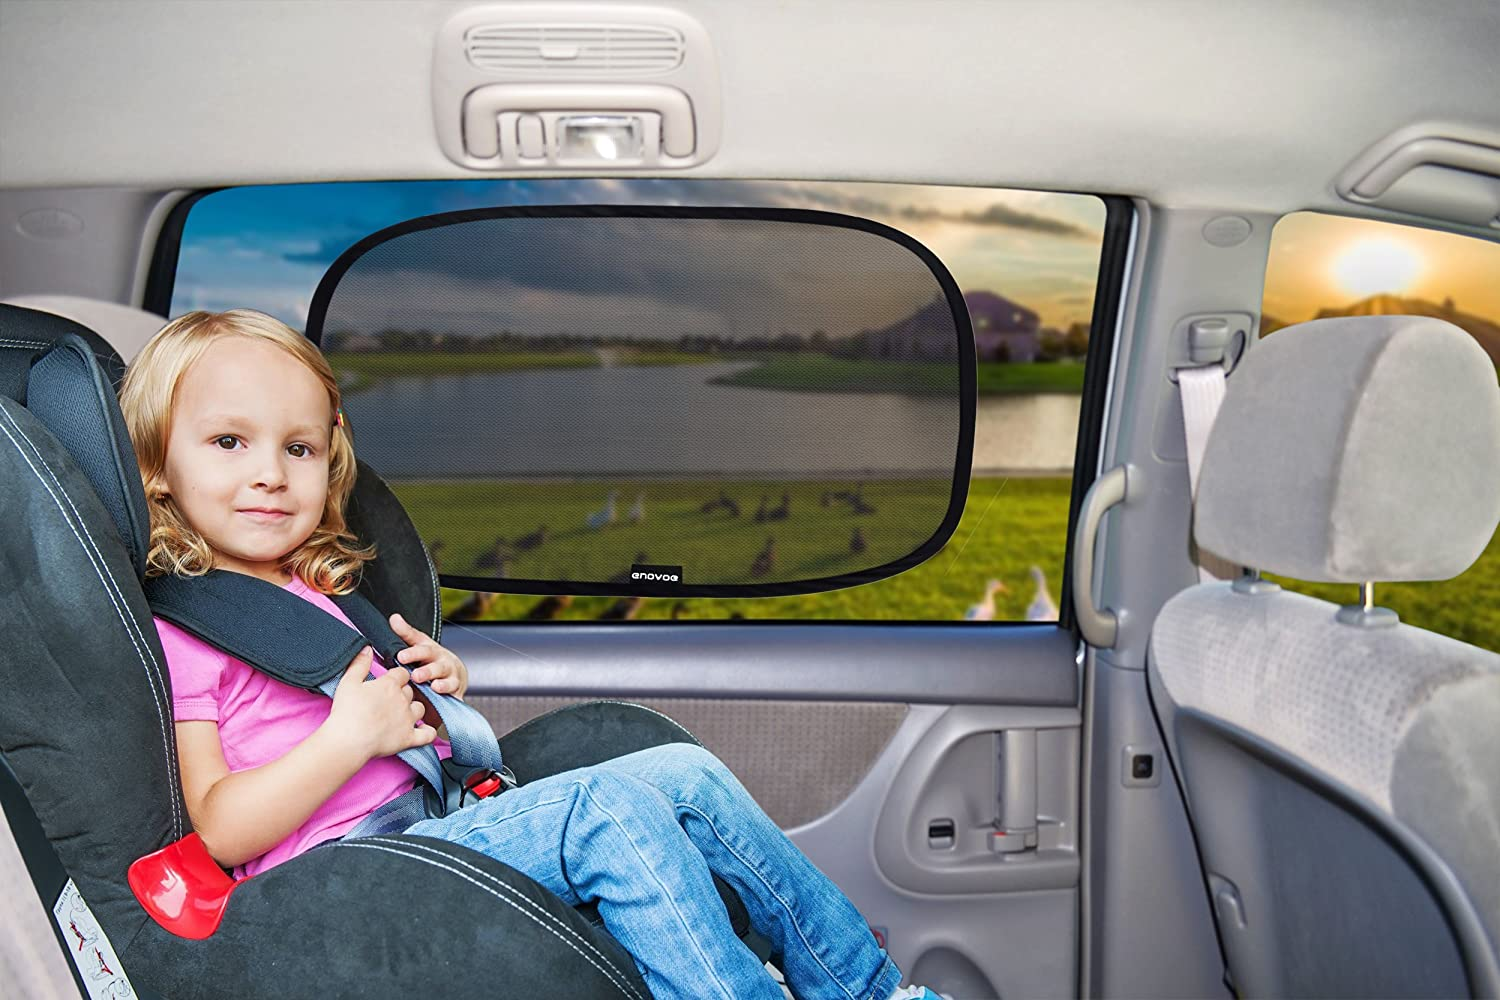 """Enovoe Car Window Shade - (2 Pack) - XL - 25"""" x 16"""" - Cling Car Sun Shade for Windows - Sun, Glare and UV Rays Protection for Your Child - Baby Car Shades for Side Window"""